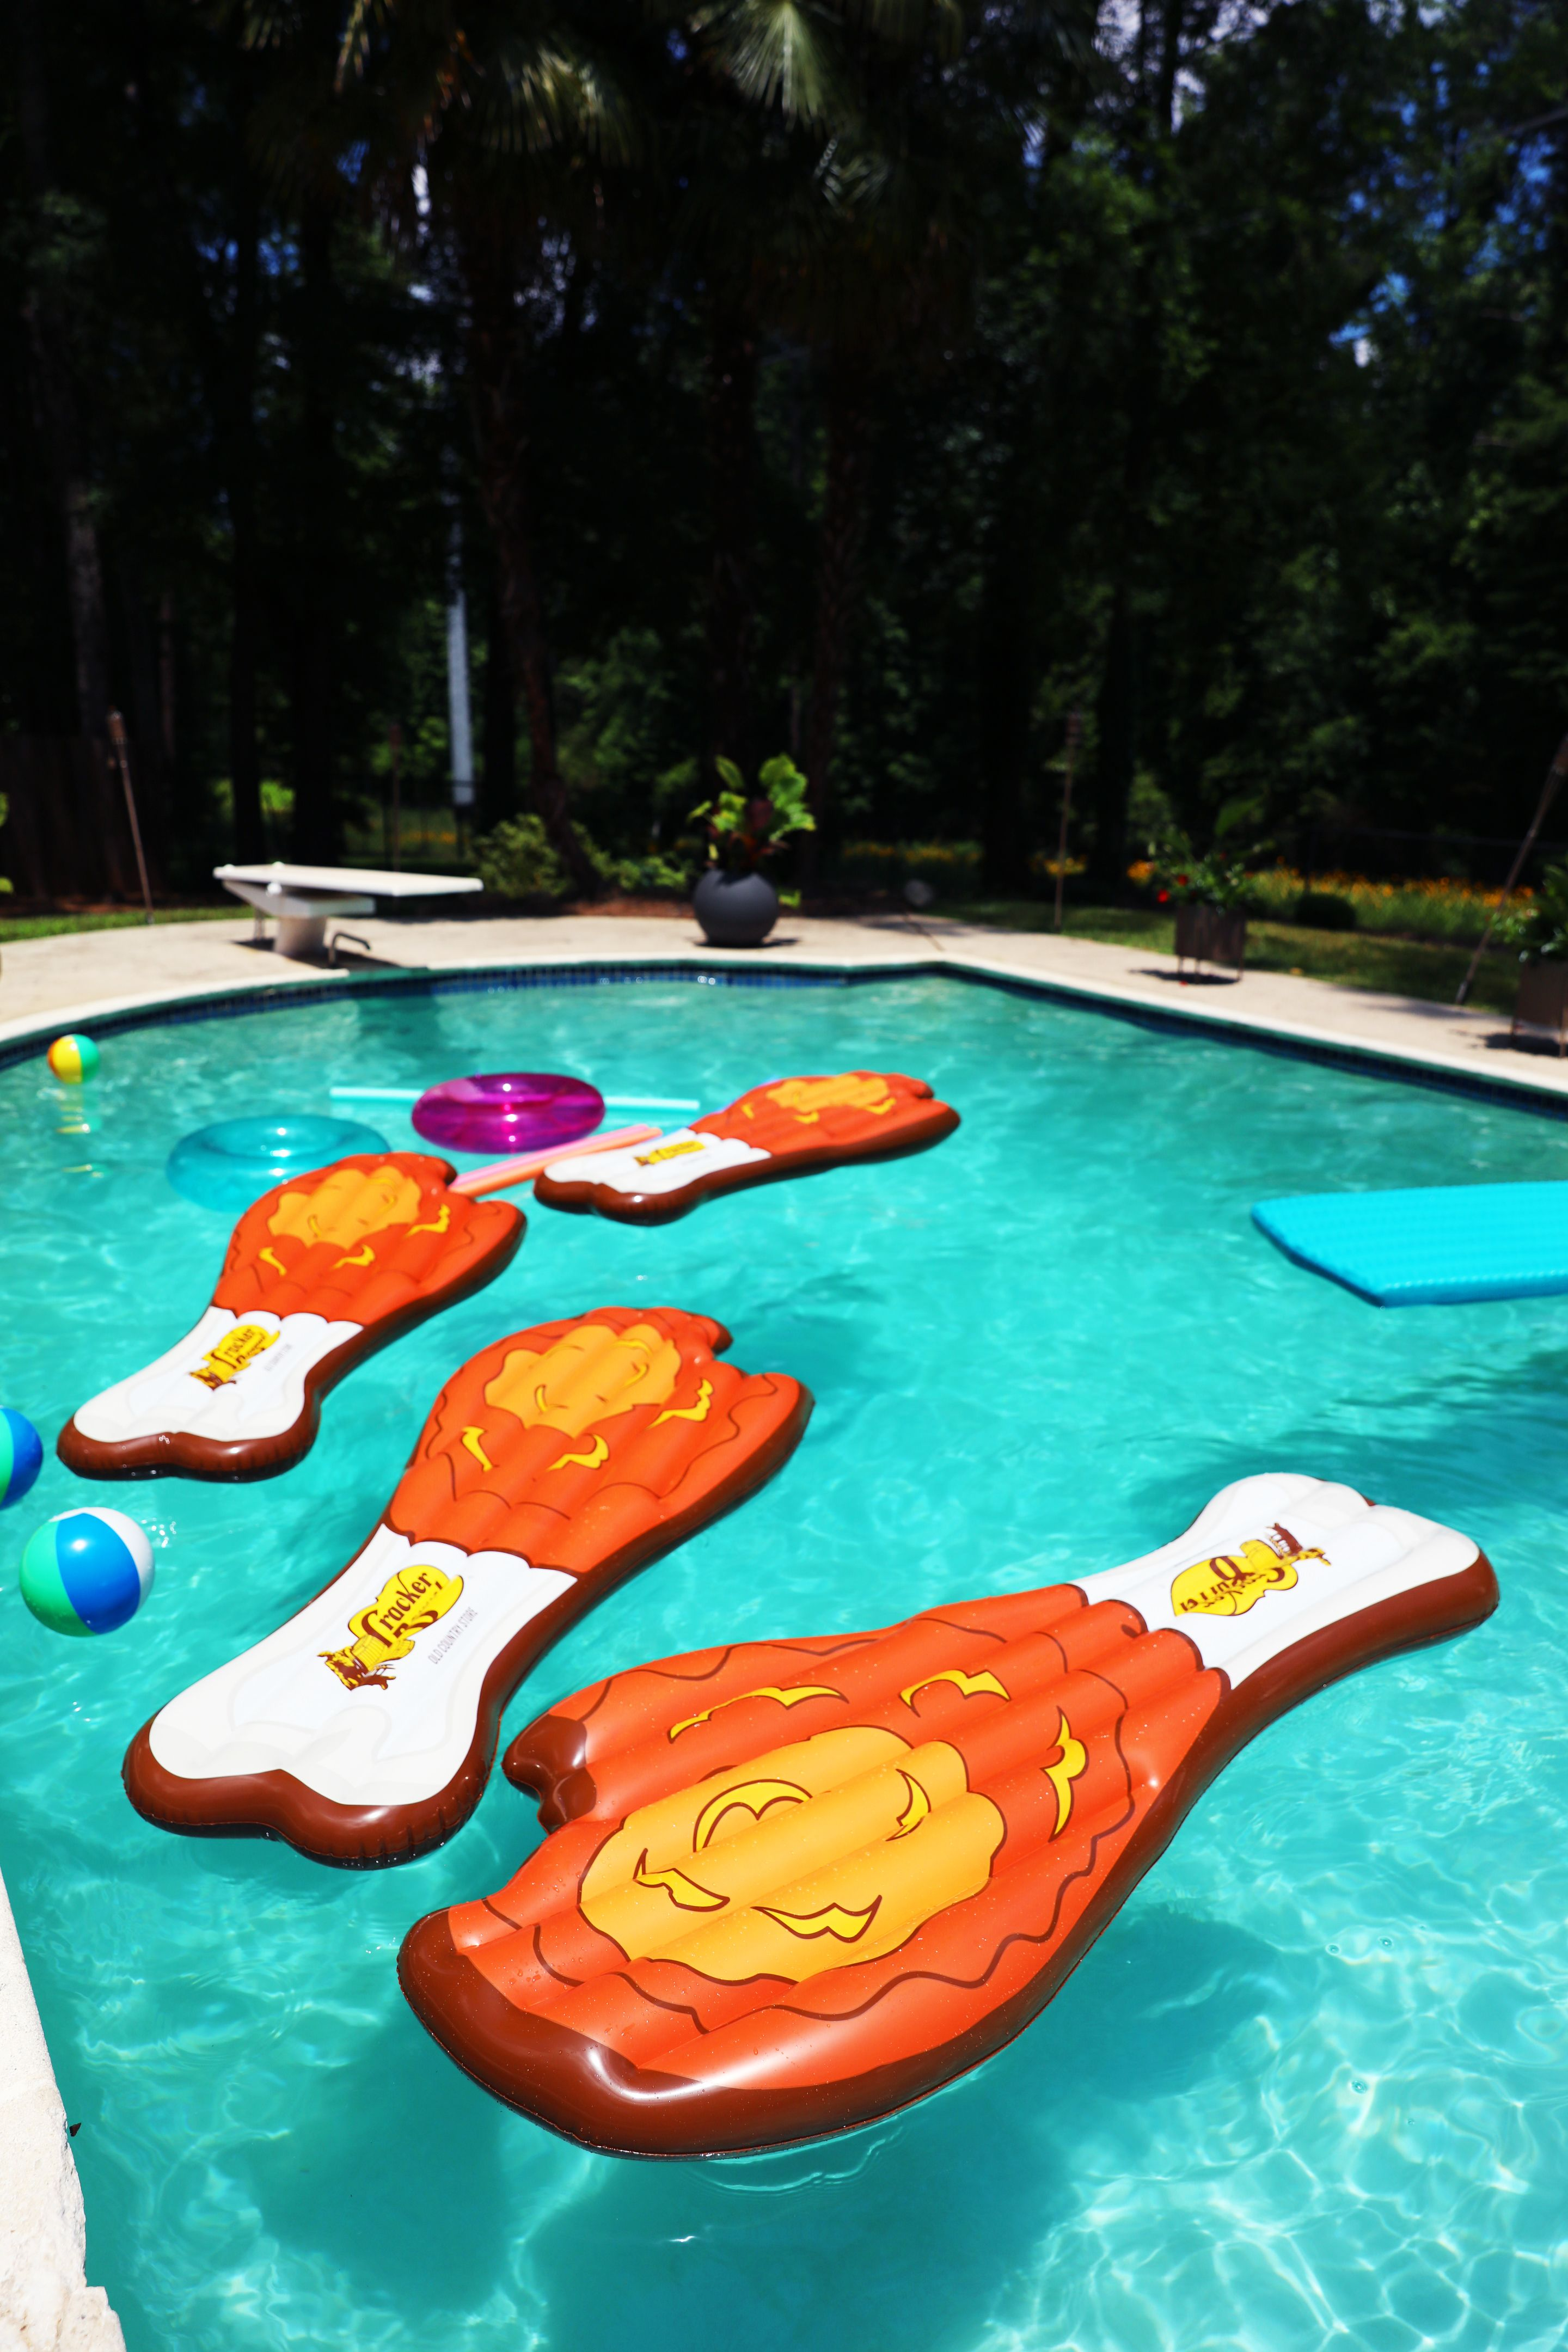 bca637f55b How To Enter To Win A Limited Edition Cracker Barrel Fried Chicken Pool  Float